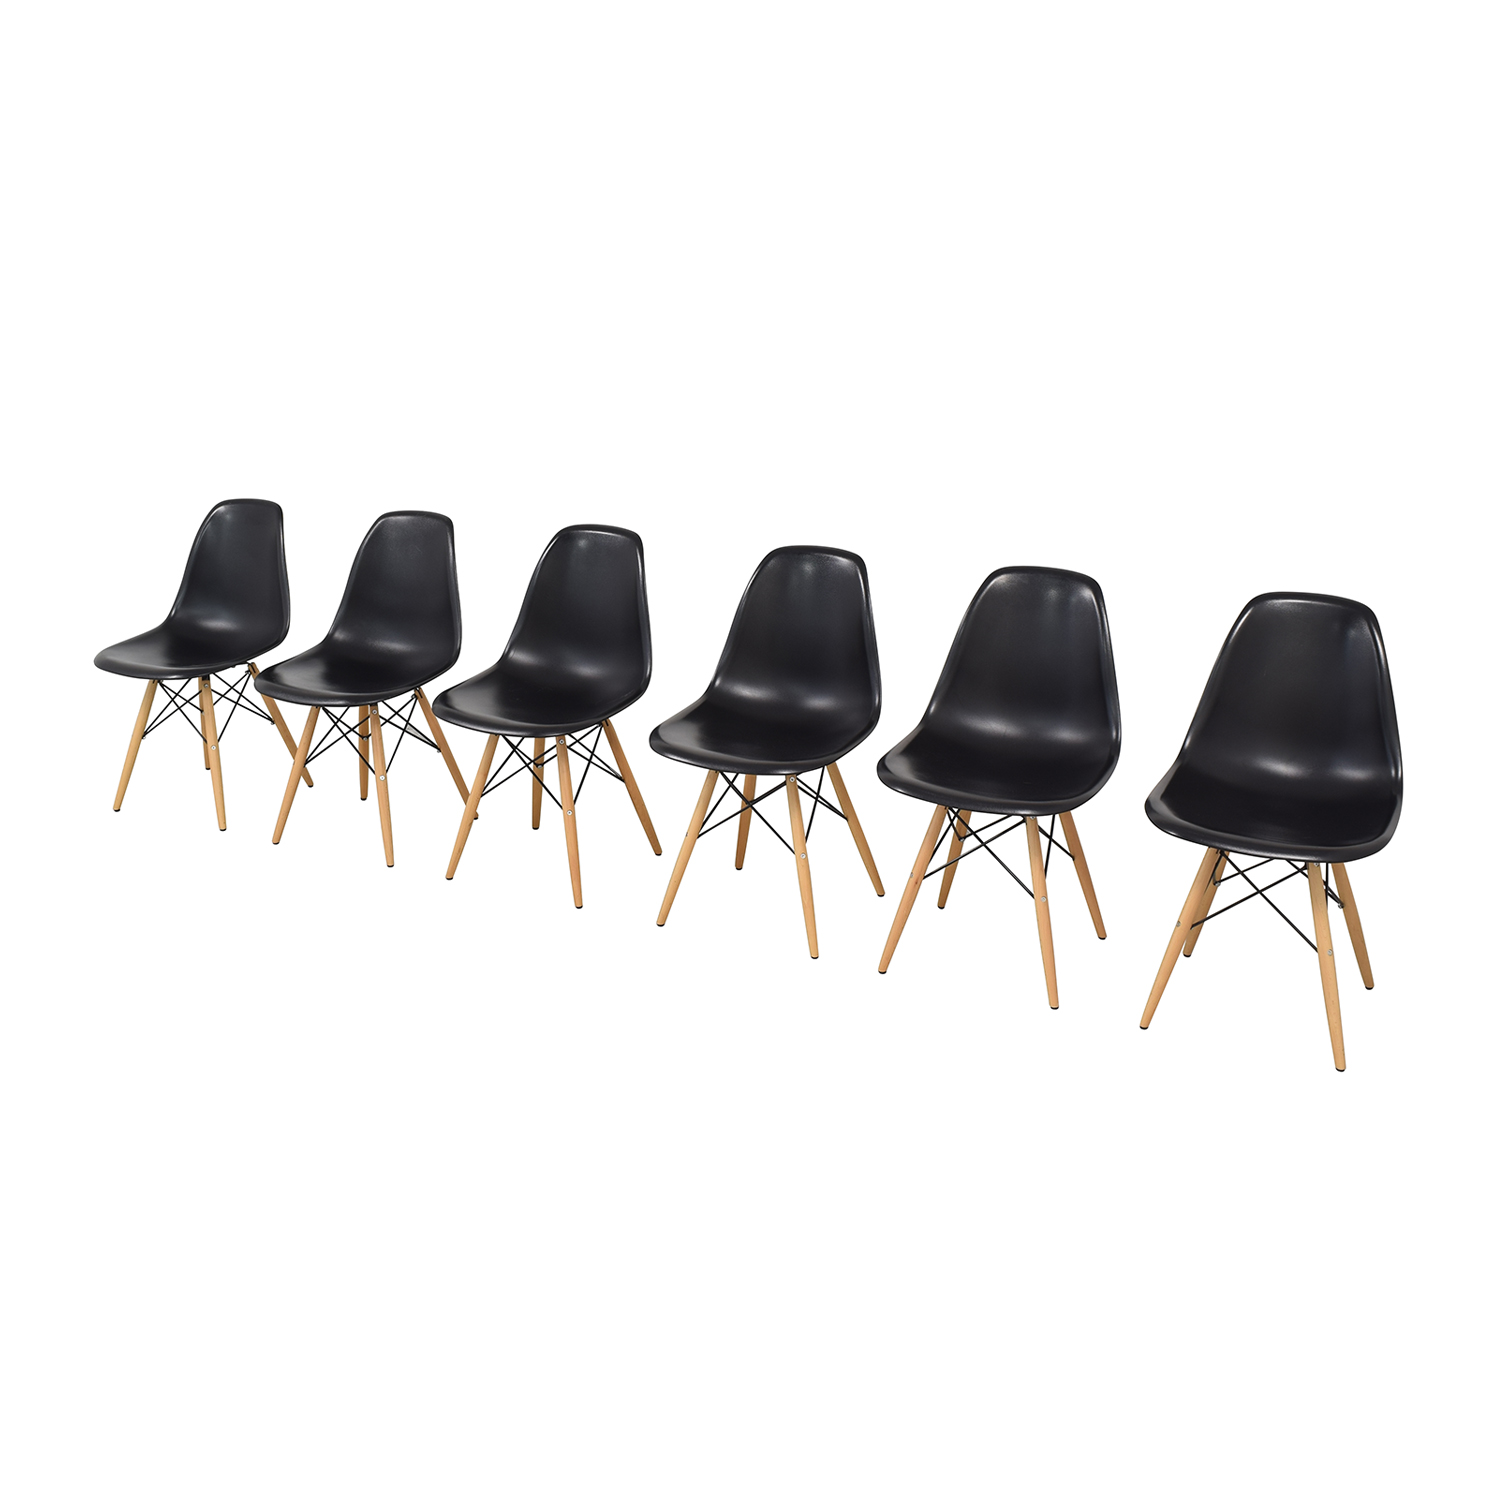 Black Eames-Style Molded Plastic Dining Chairs with Wooden Legs sale